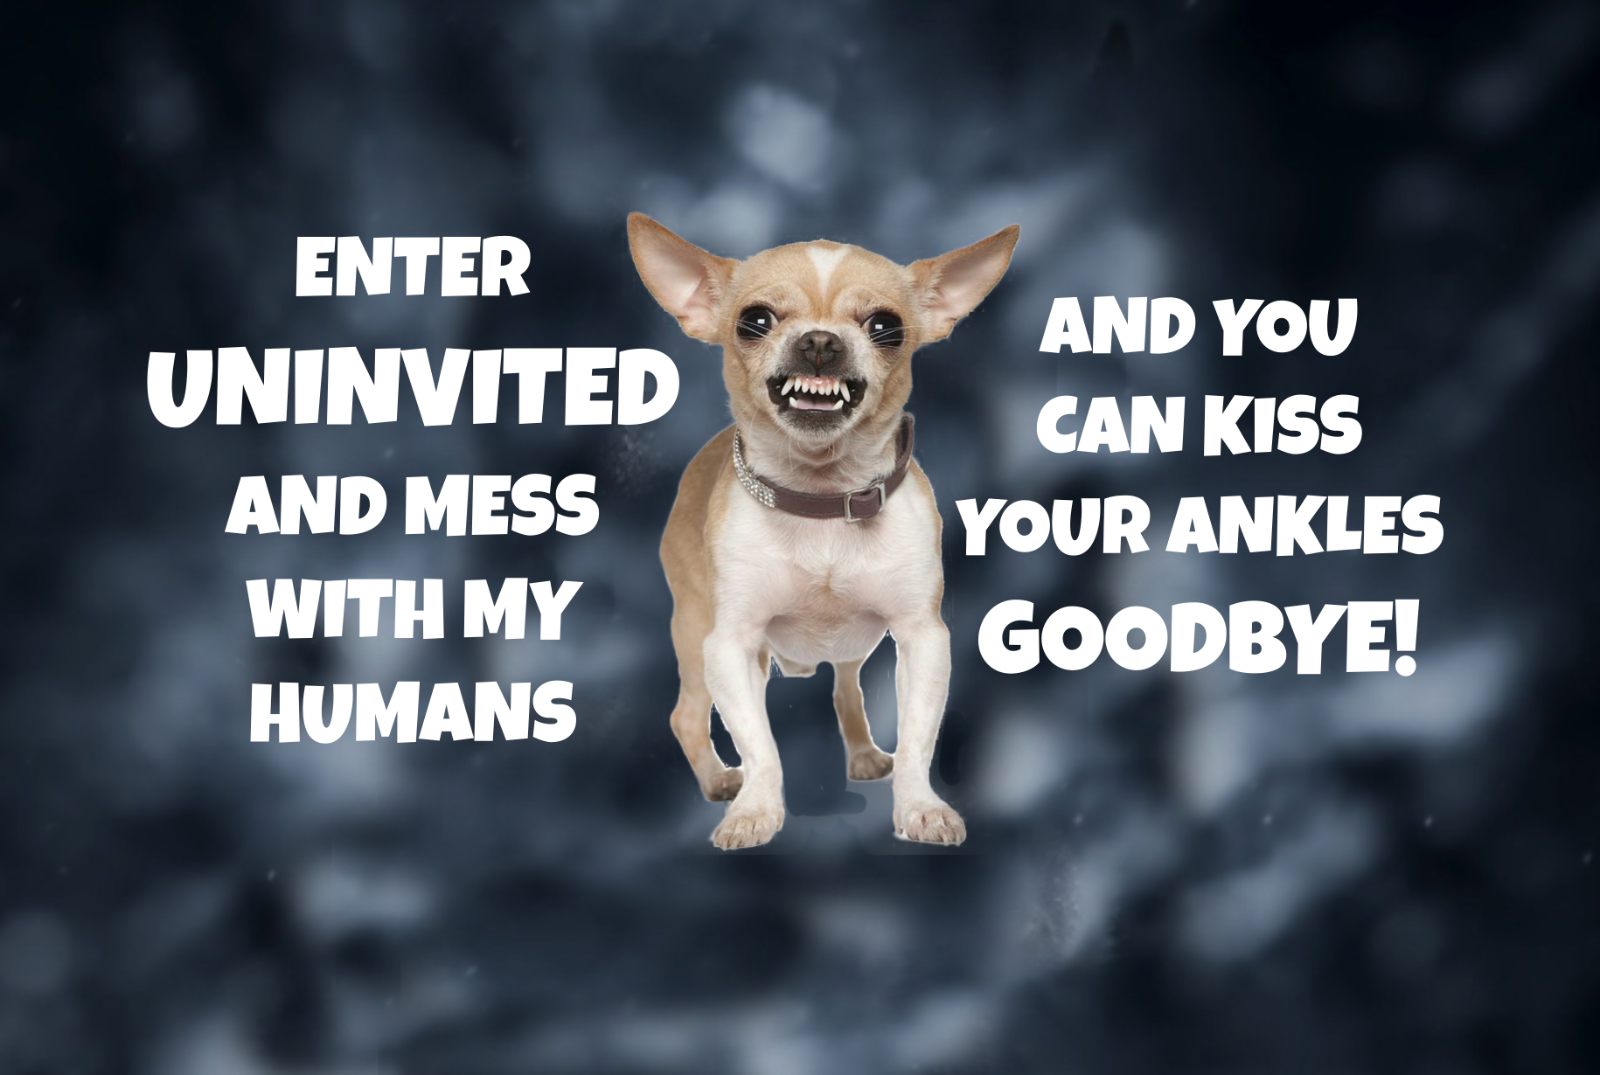 Primary image for 374 CHIHUAHUA KISS YOUR ANKLES GOODBYE GATE FENCE SIGN